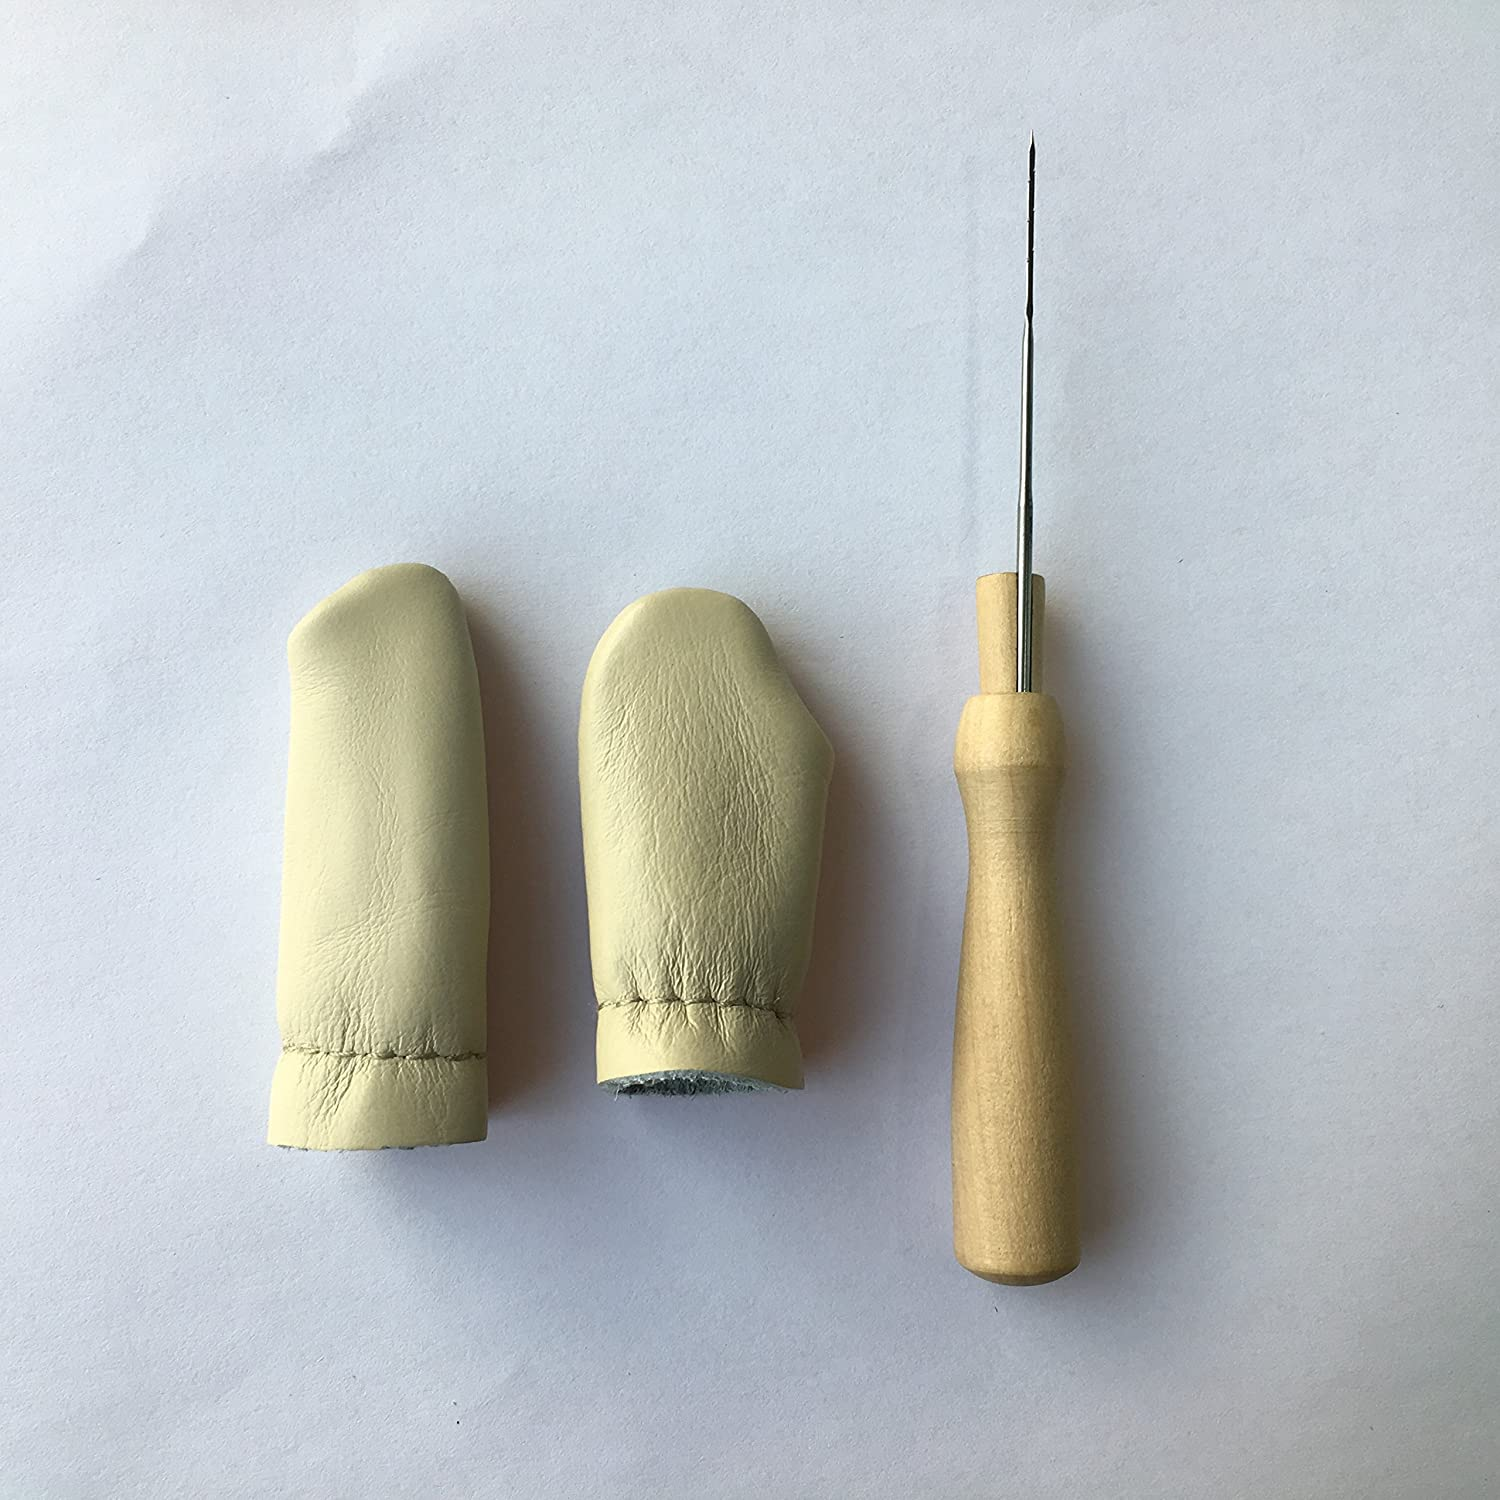 1pc Wooden Felting Handle with 1x needle + 2pcs Needle Felting Finger Protectors Leather Finger Cot Necessary for Every Felter by Truslin Linge 4336935807